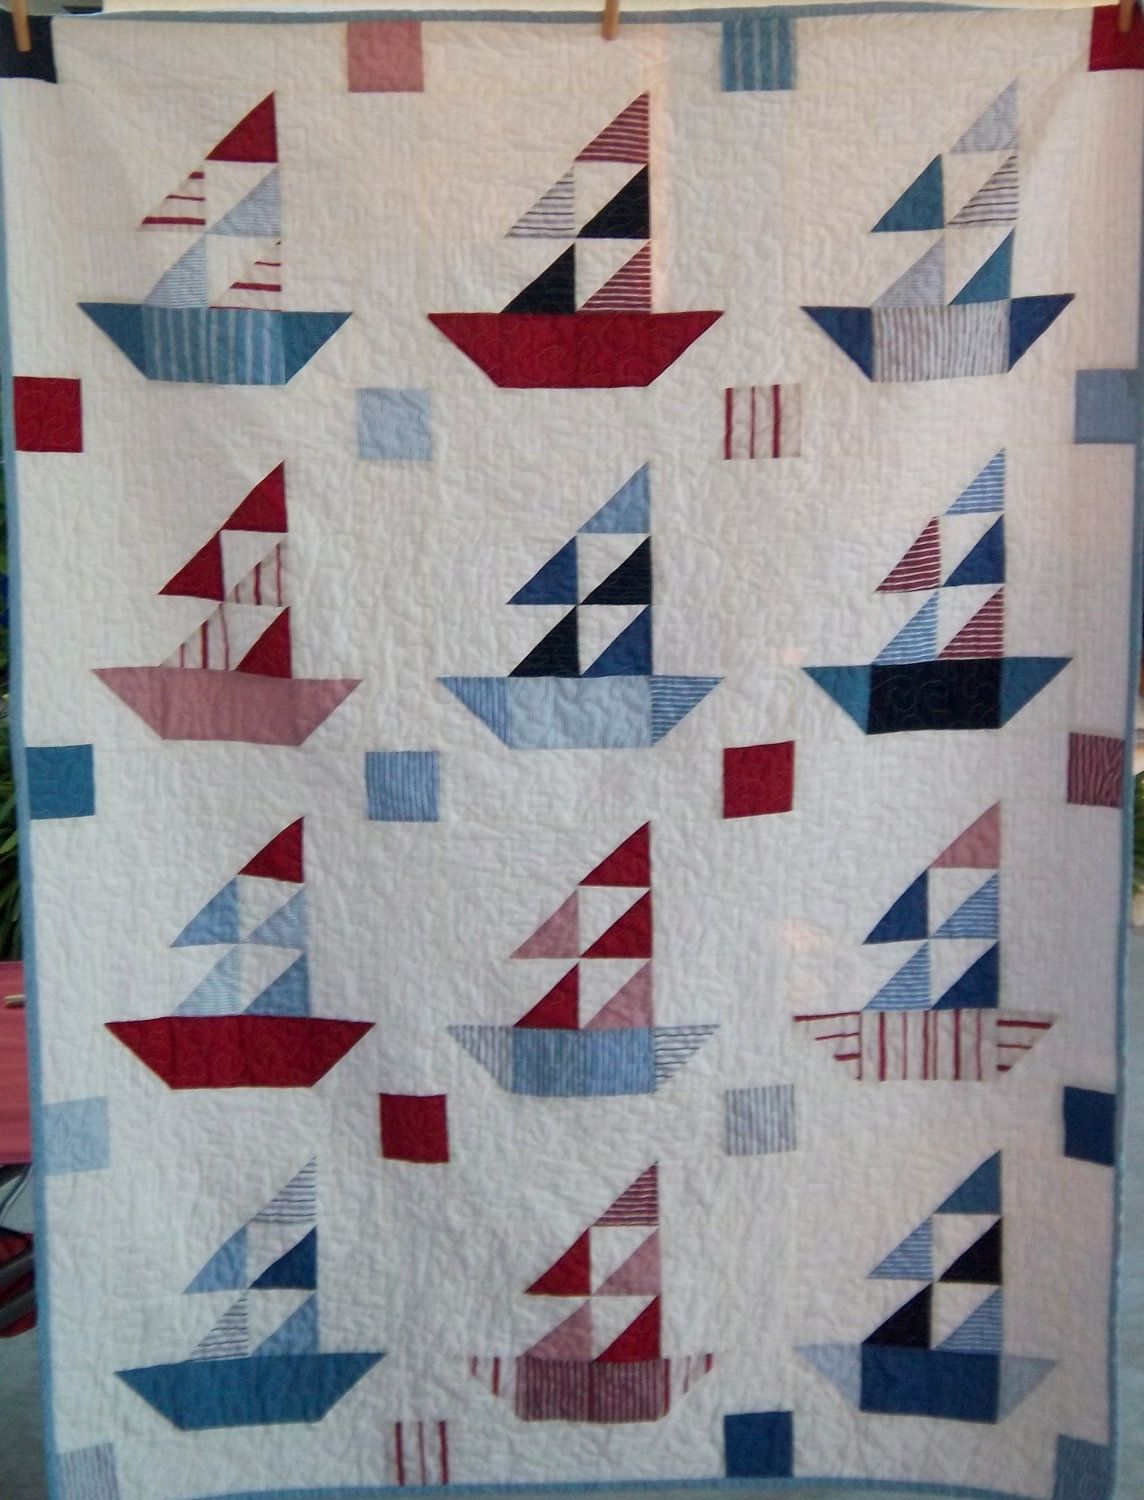 Dreamy Americana Sailboat Quilt by Dreamy Vintage Sheets on Etsy ... : sailboat quilt pattern - Adamdwight.com